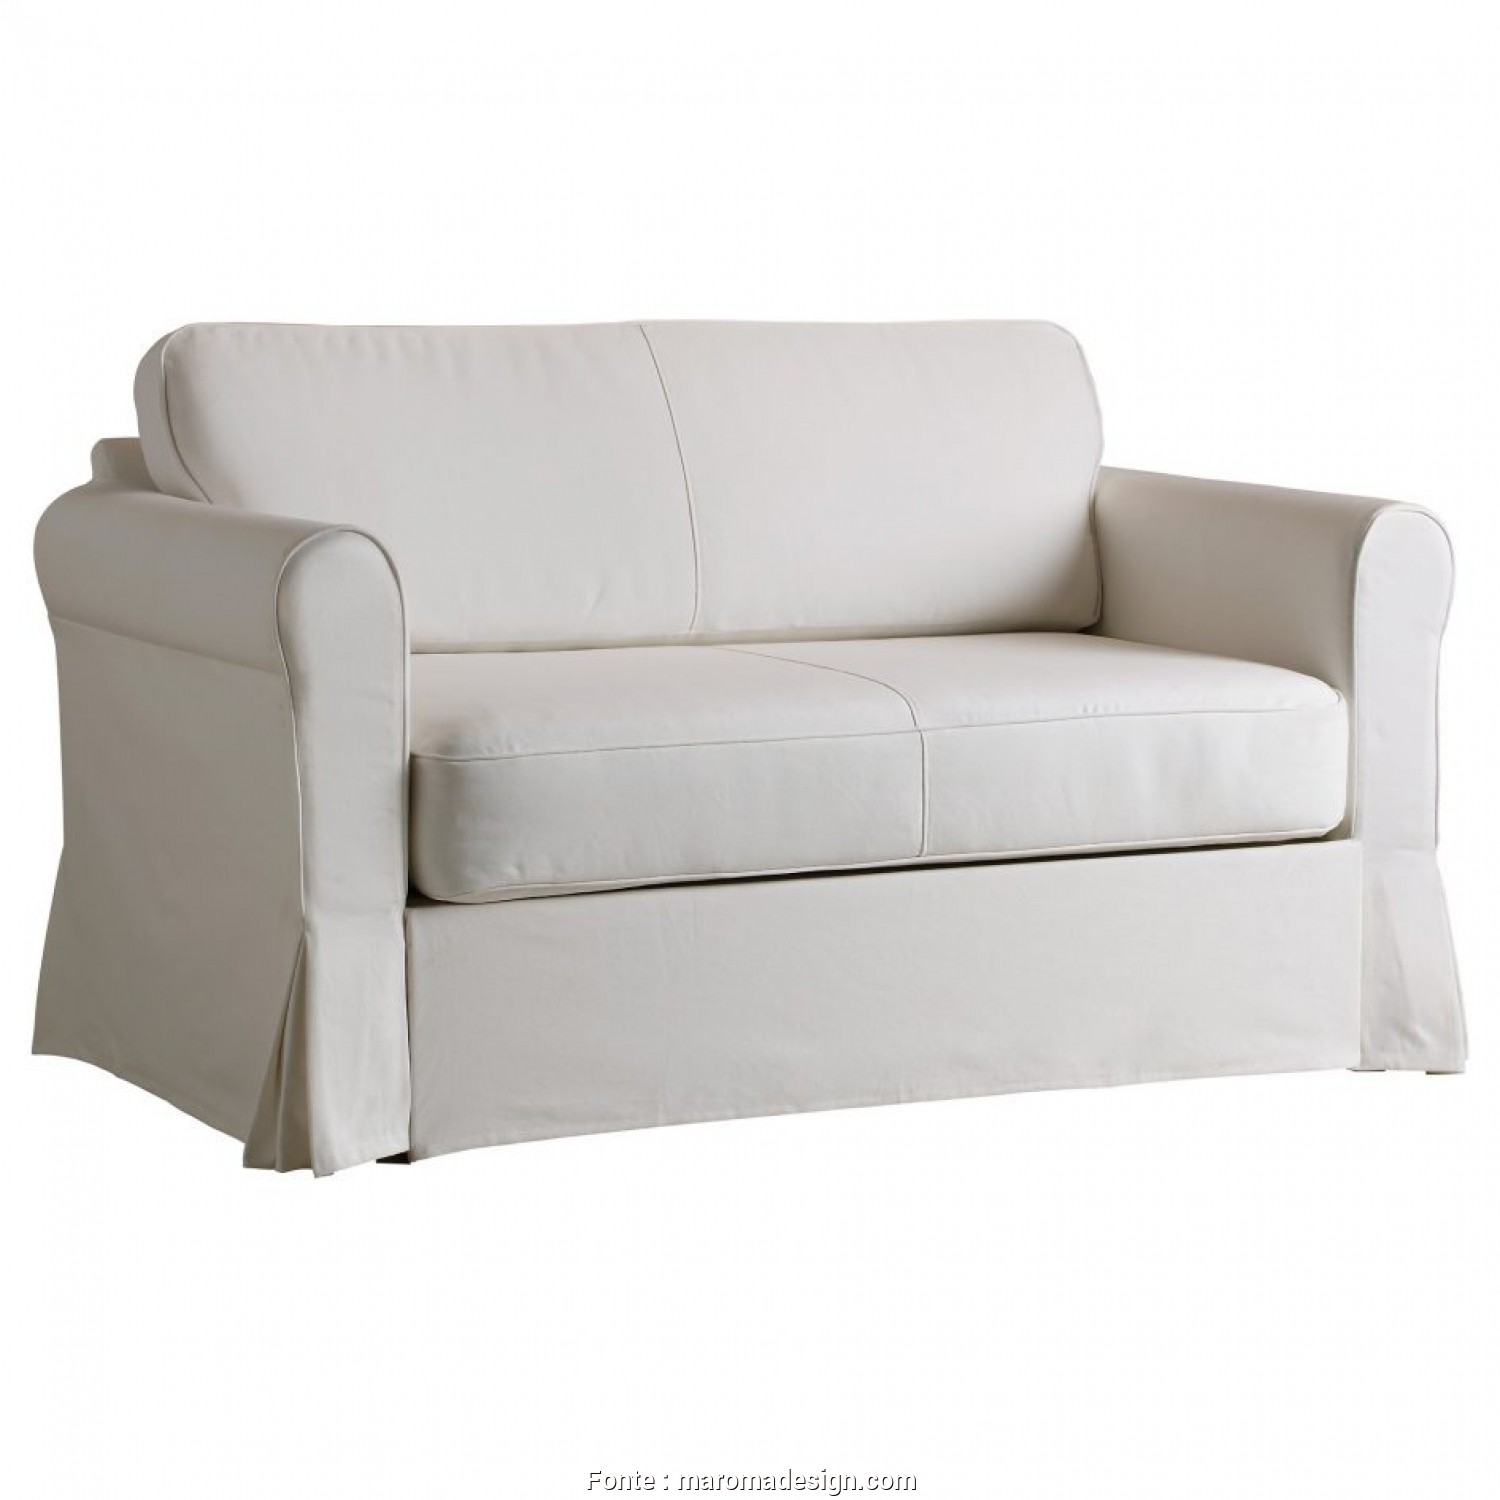 Ikea Futon Couch, Sbalorditivo Seating, Inspirations Ikea Loveseat Sleeper Sofas Best, Newest Furniture Sofa White Then Intended For